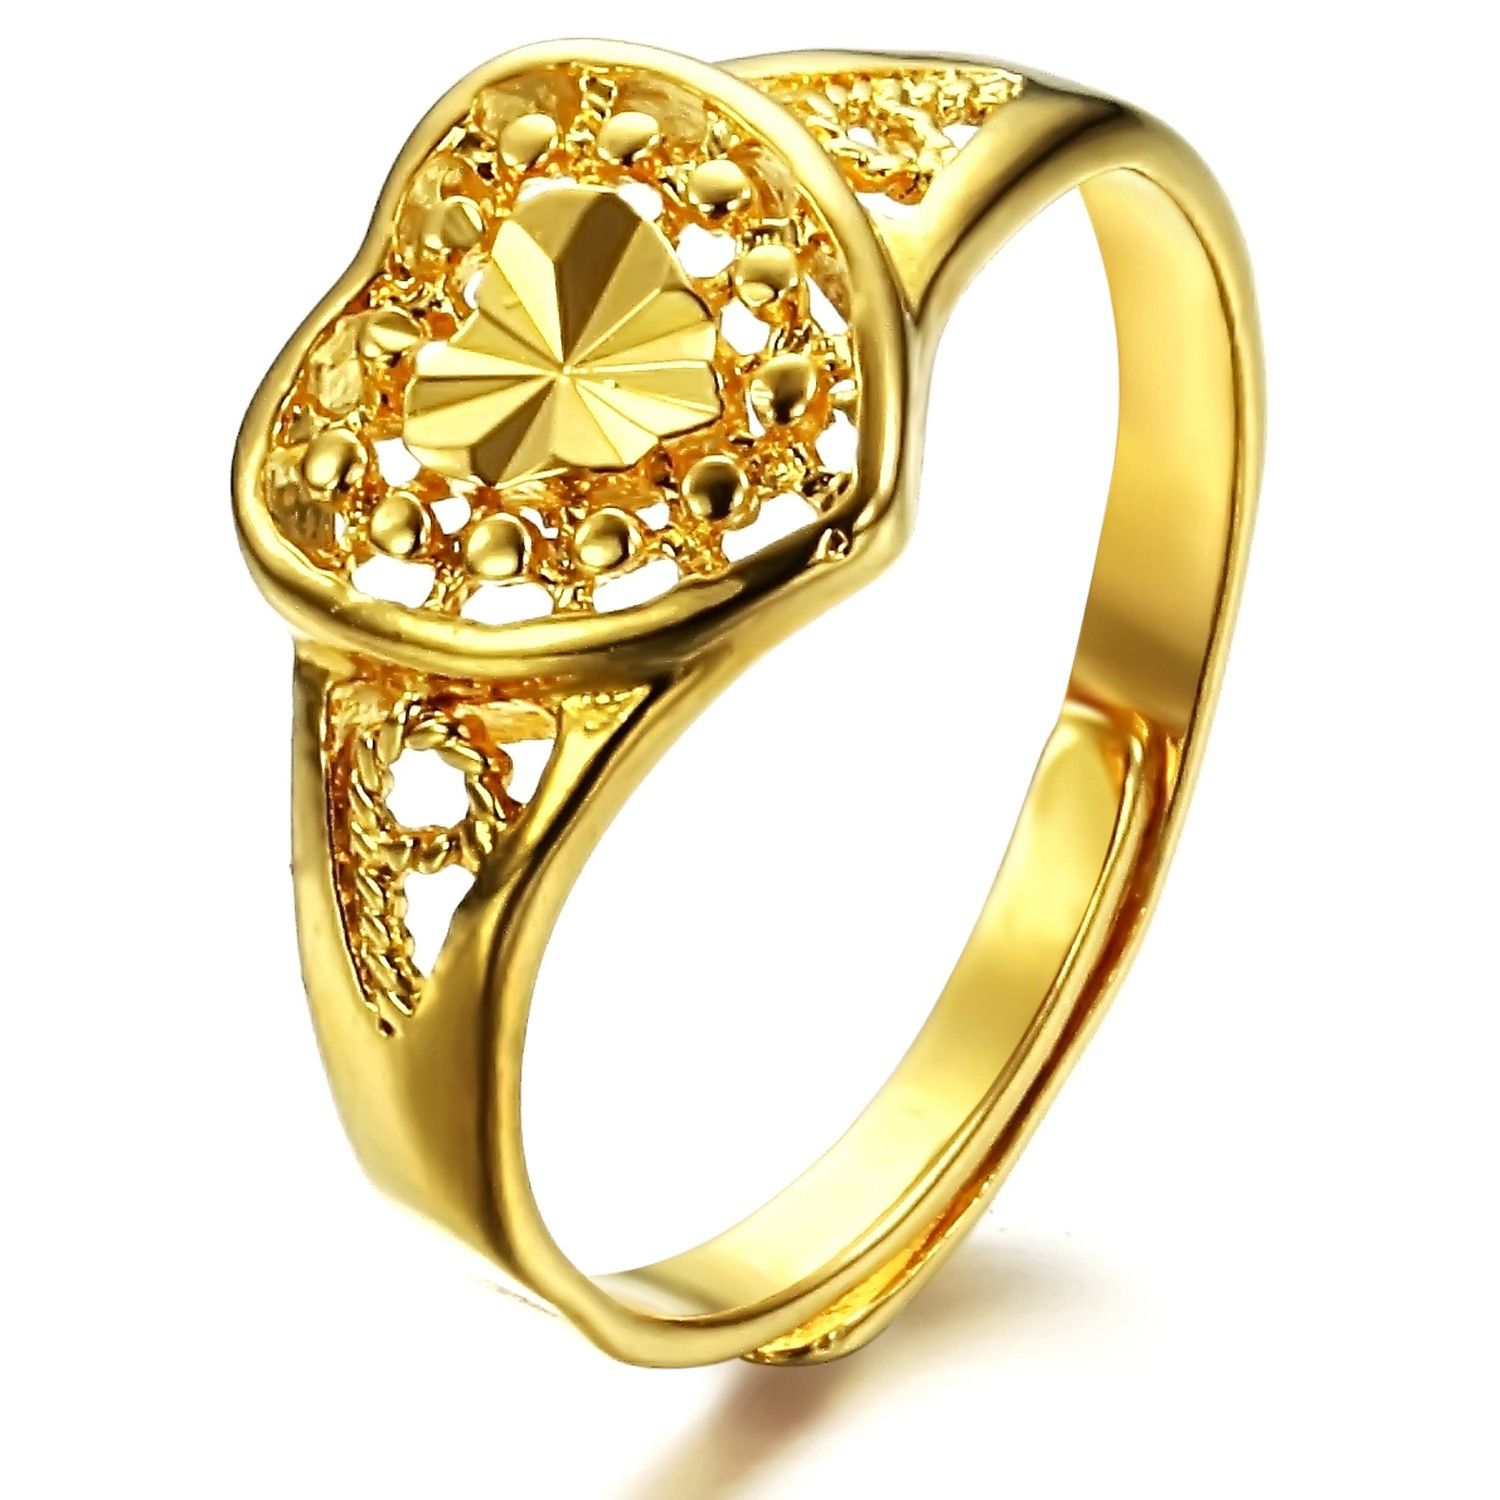 gold rings Heart Rings Pinterest